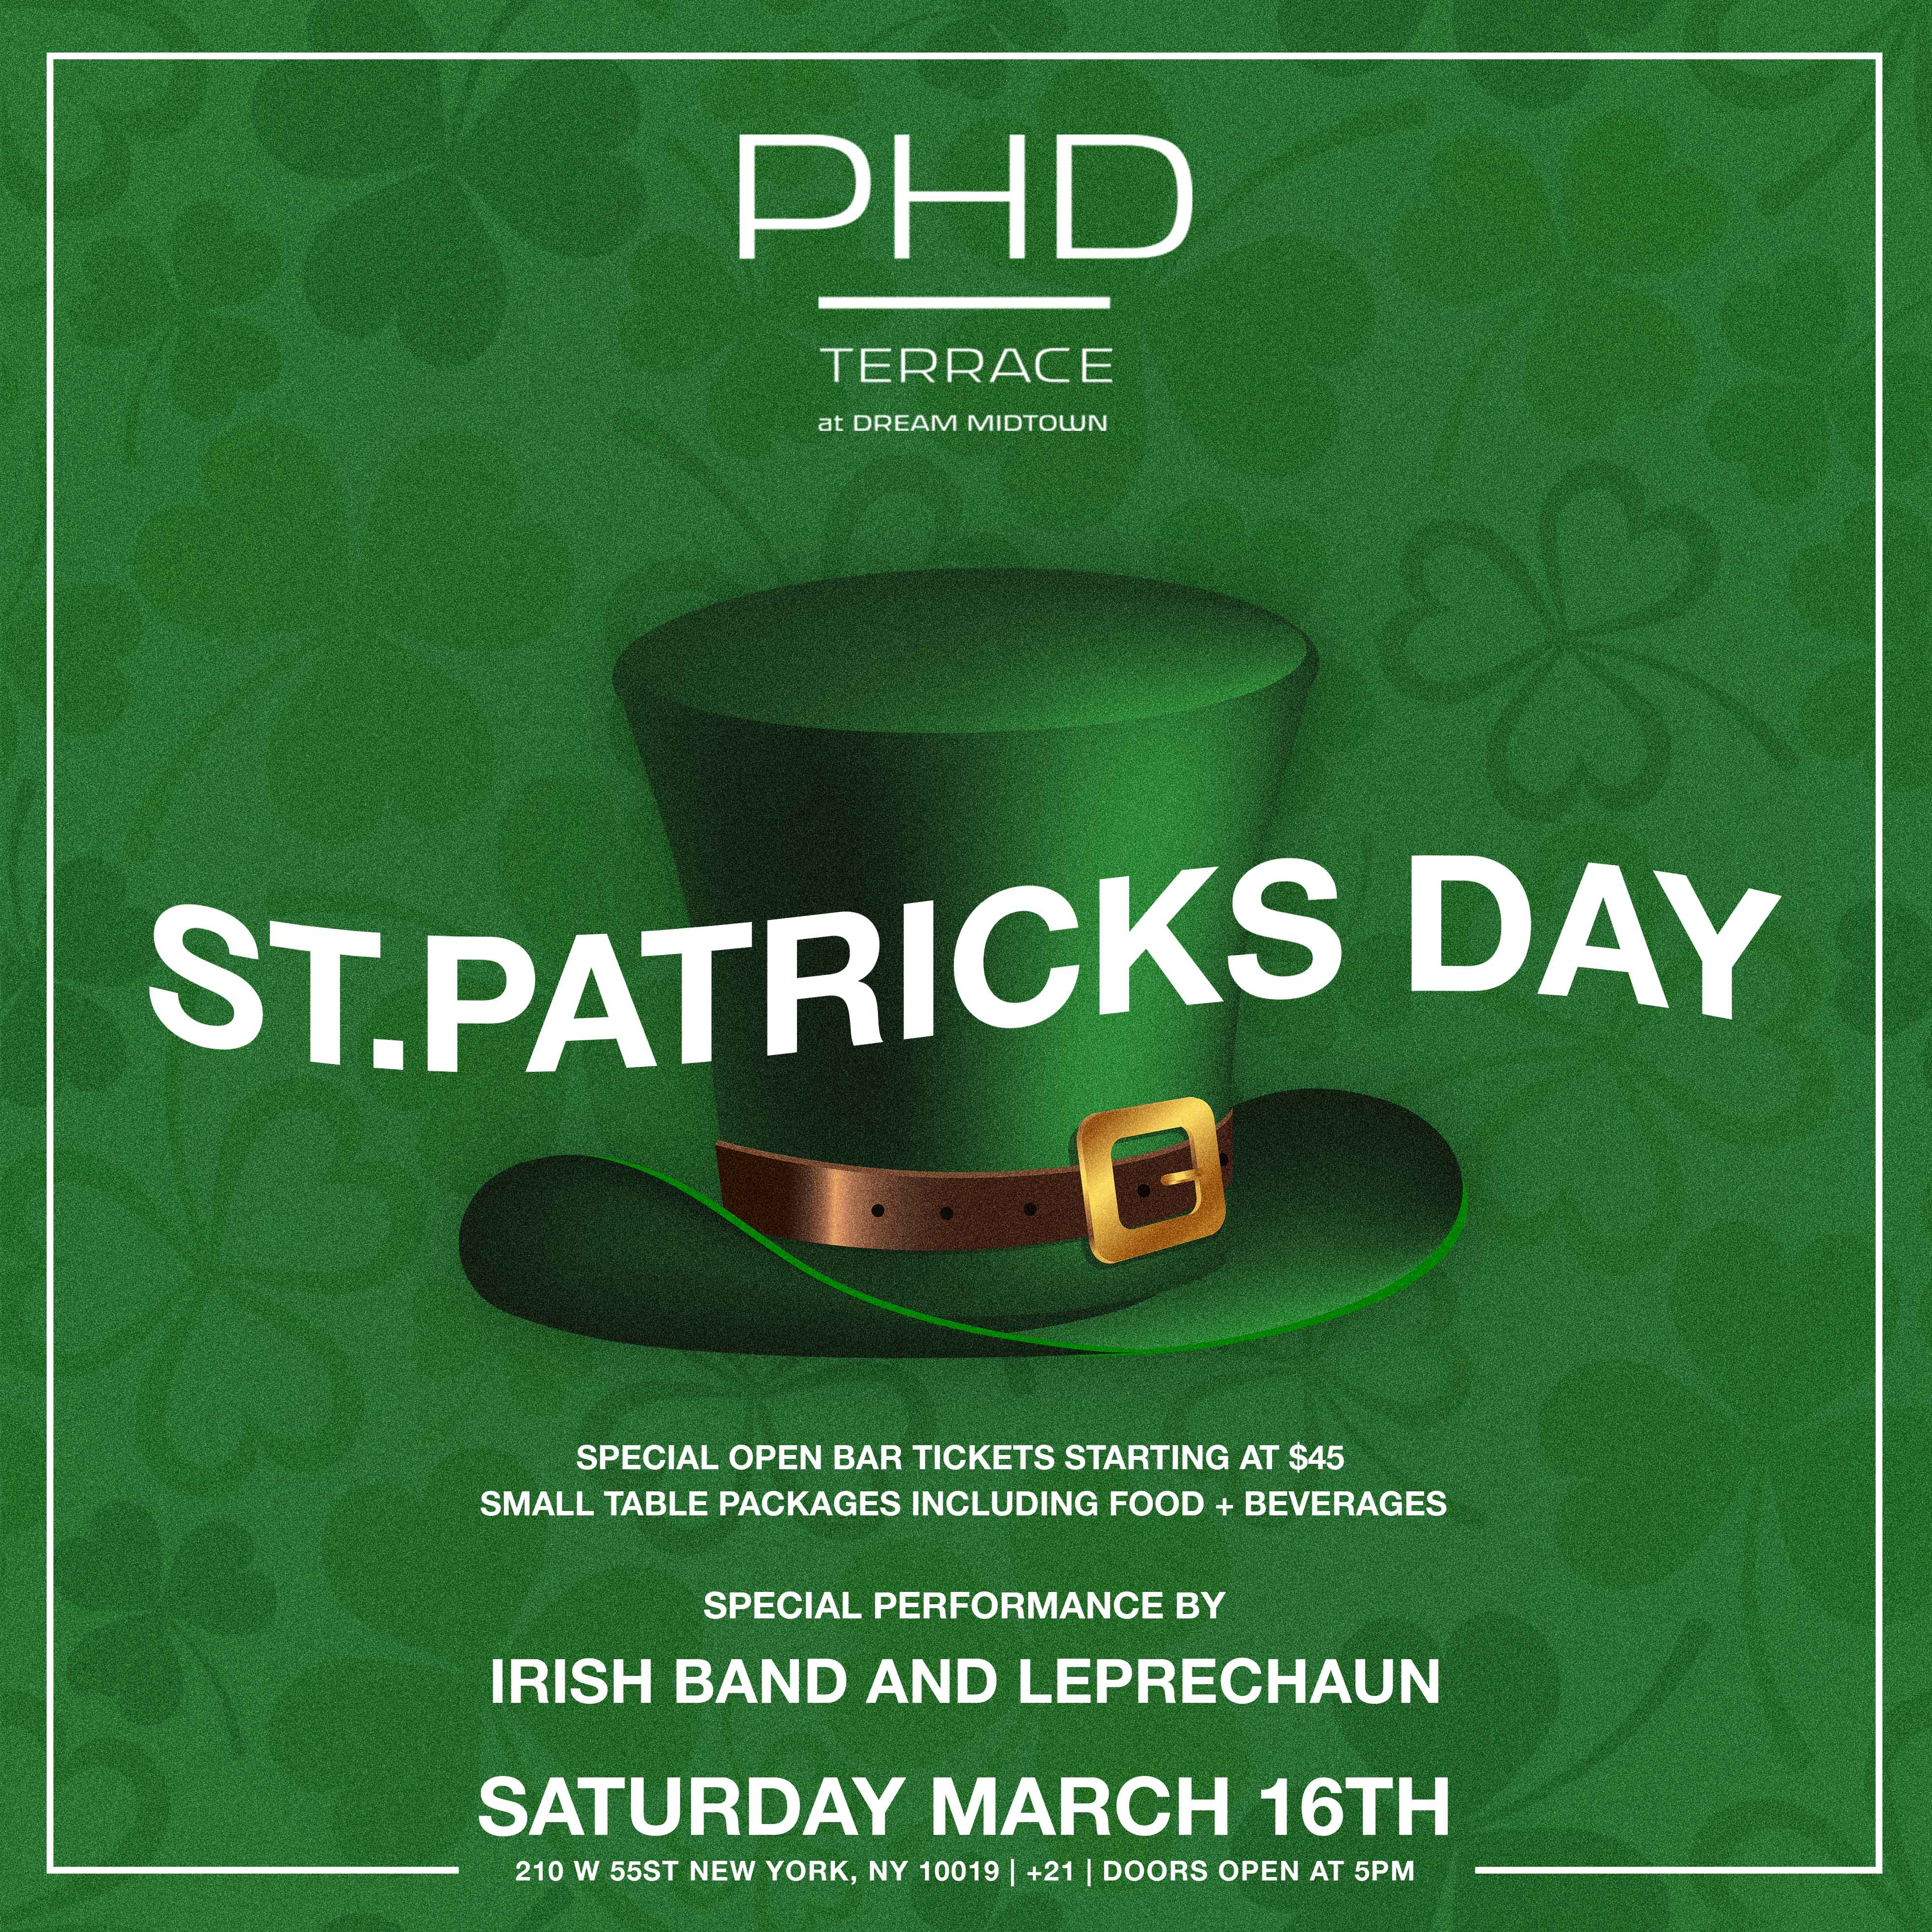 St.Patrick's Day At PHD Terrace Dream Midtown